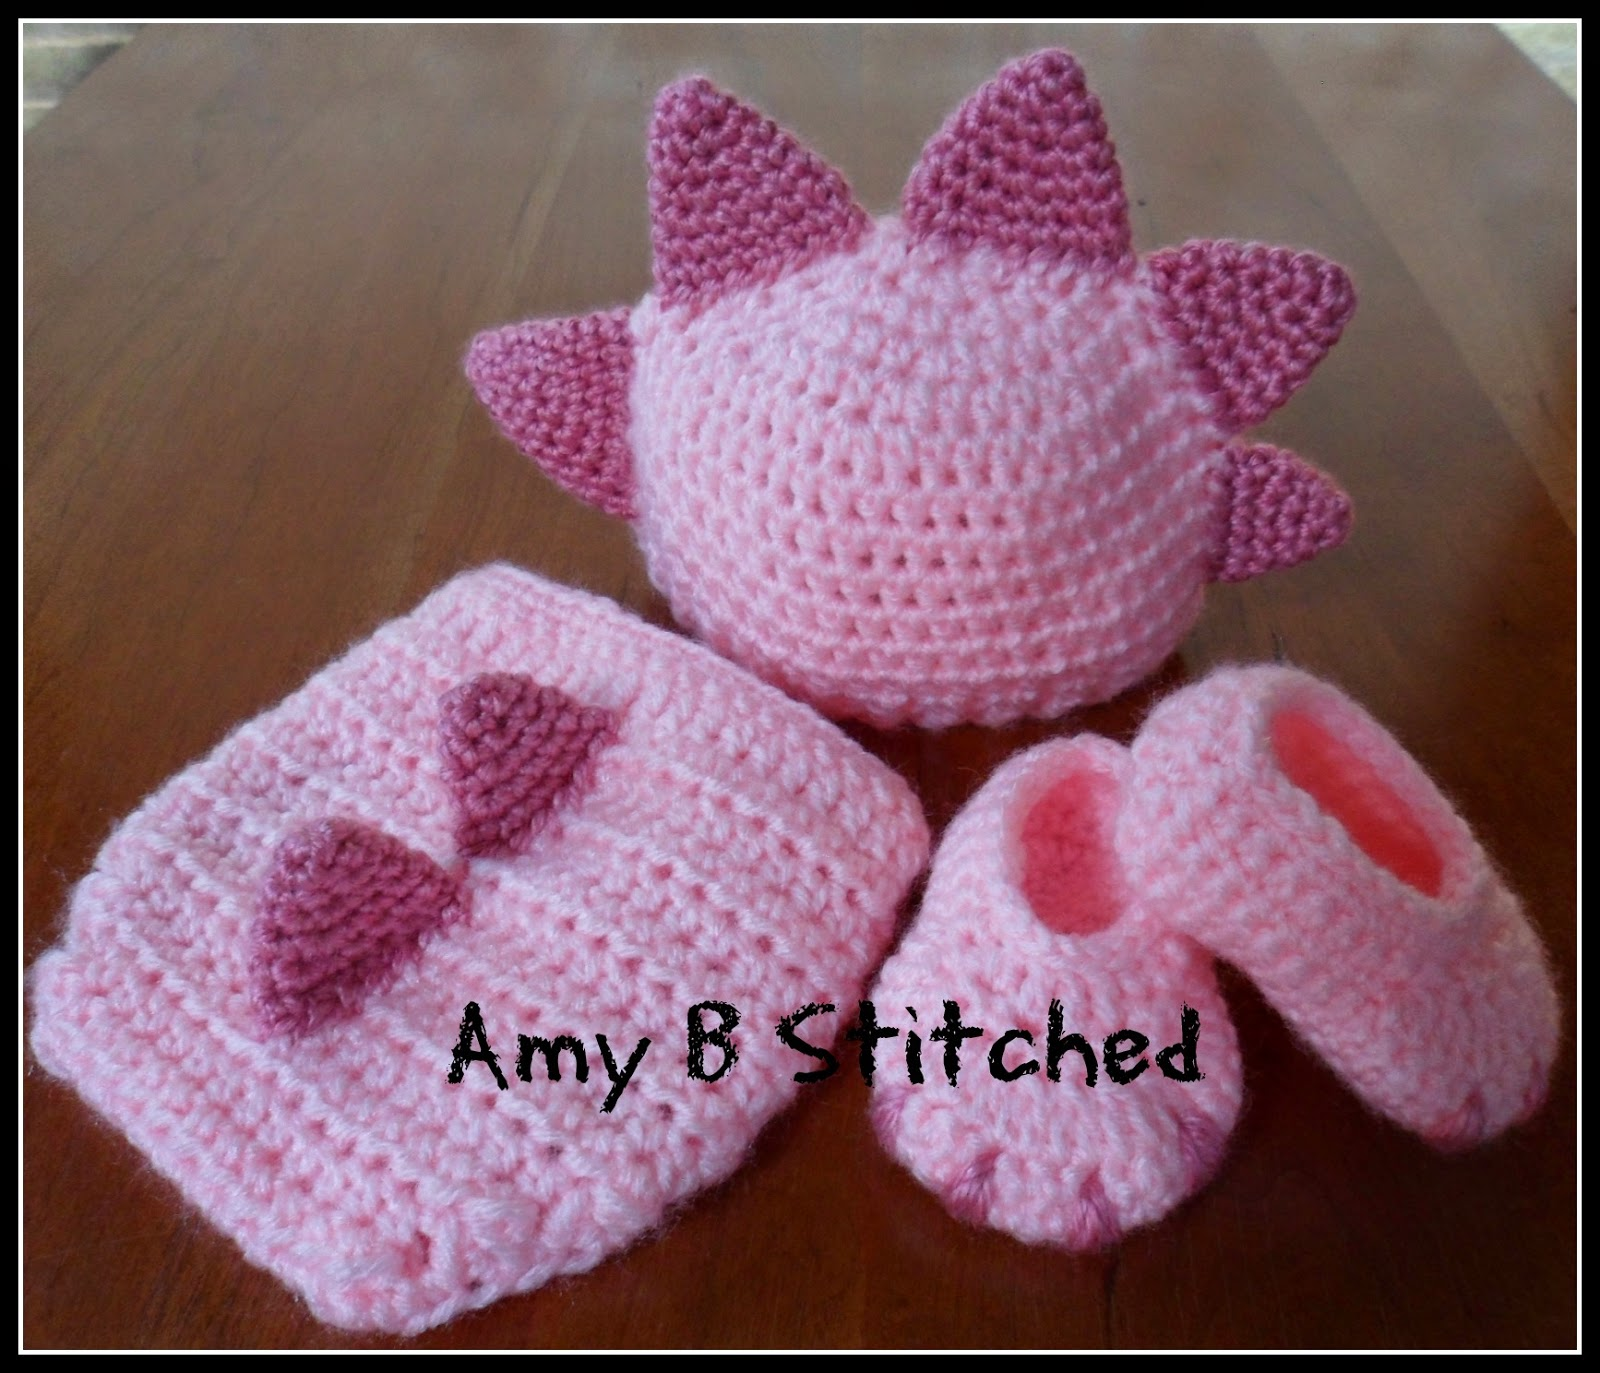 A Stitch At A Time for Amy B Stitched: Newborn DINOSAUR BABY Hat and ...